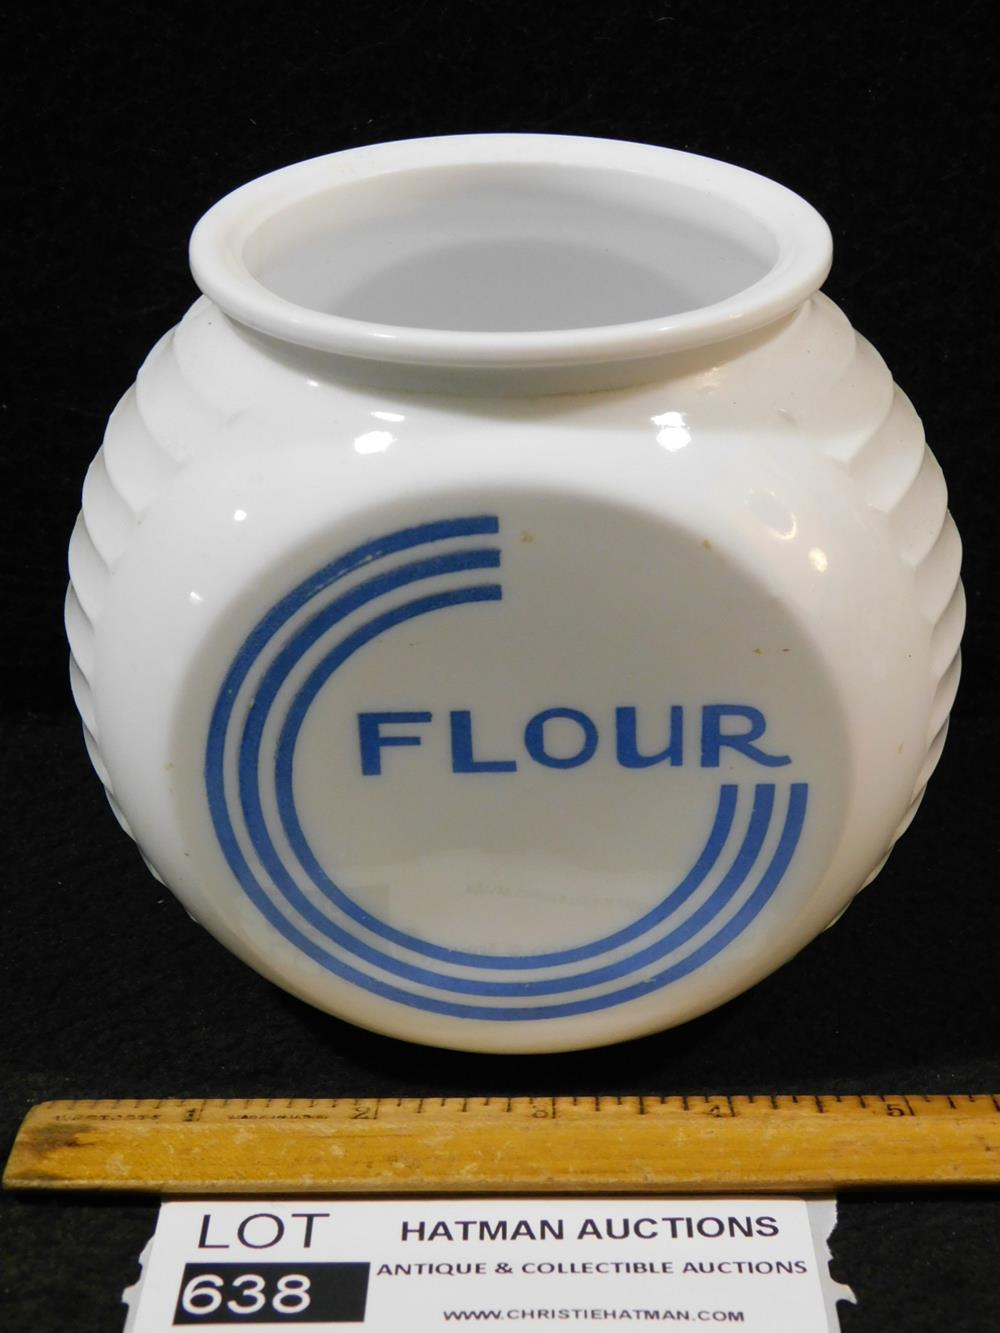 VINTAGE FLOUR CANISTER ANTIQUES AND COLLECTIBLES